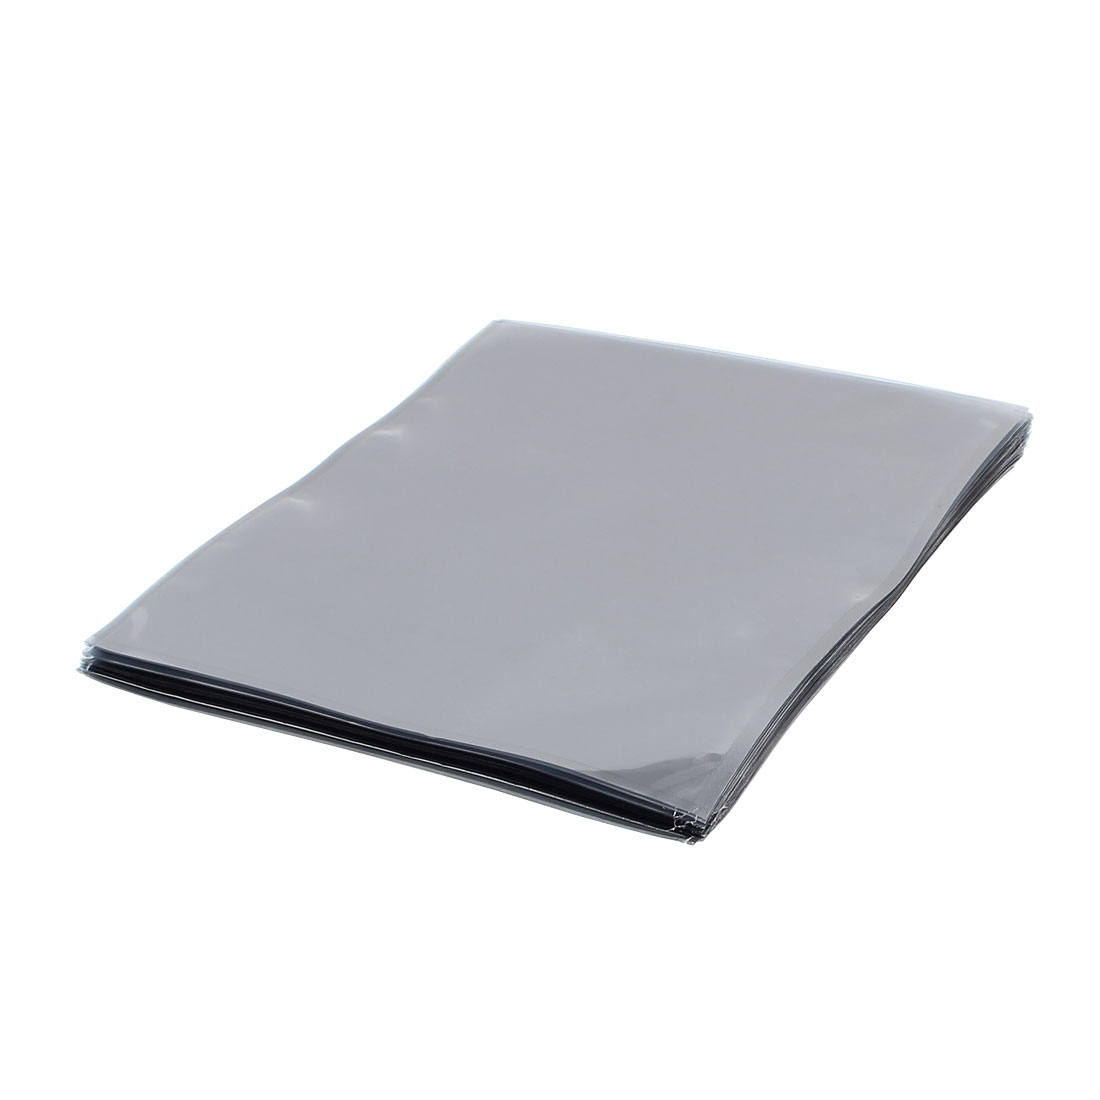 50 Pcs 300mm x 400mm Silver Tone Flat Open Top Anti Static Bag For Electronics